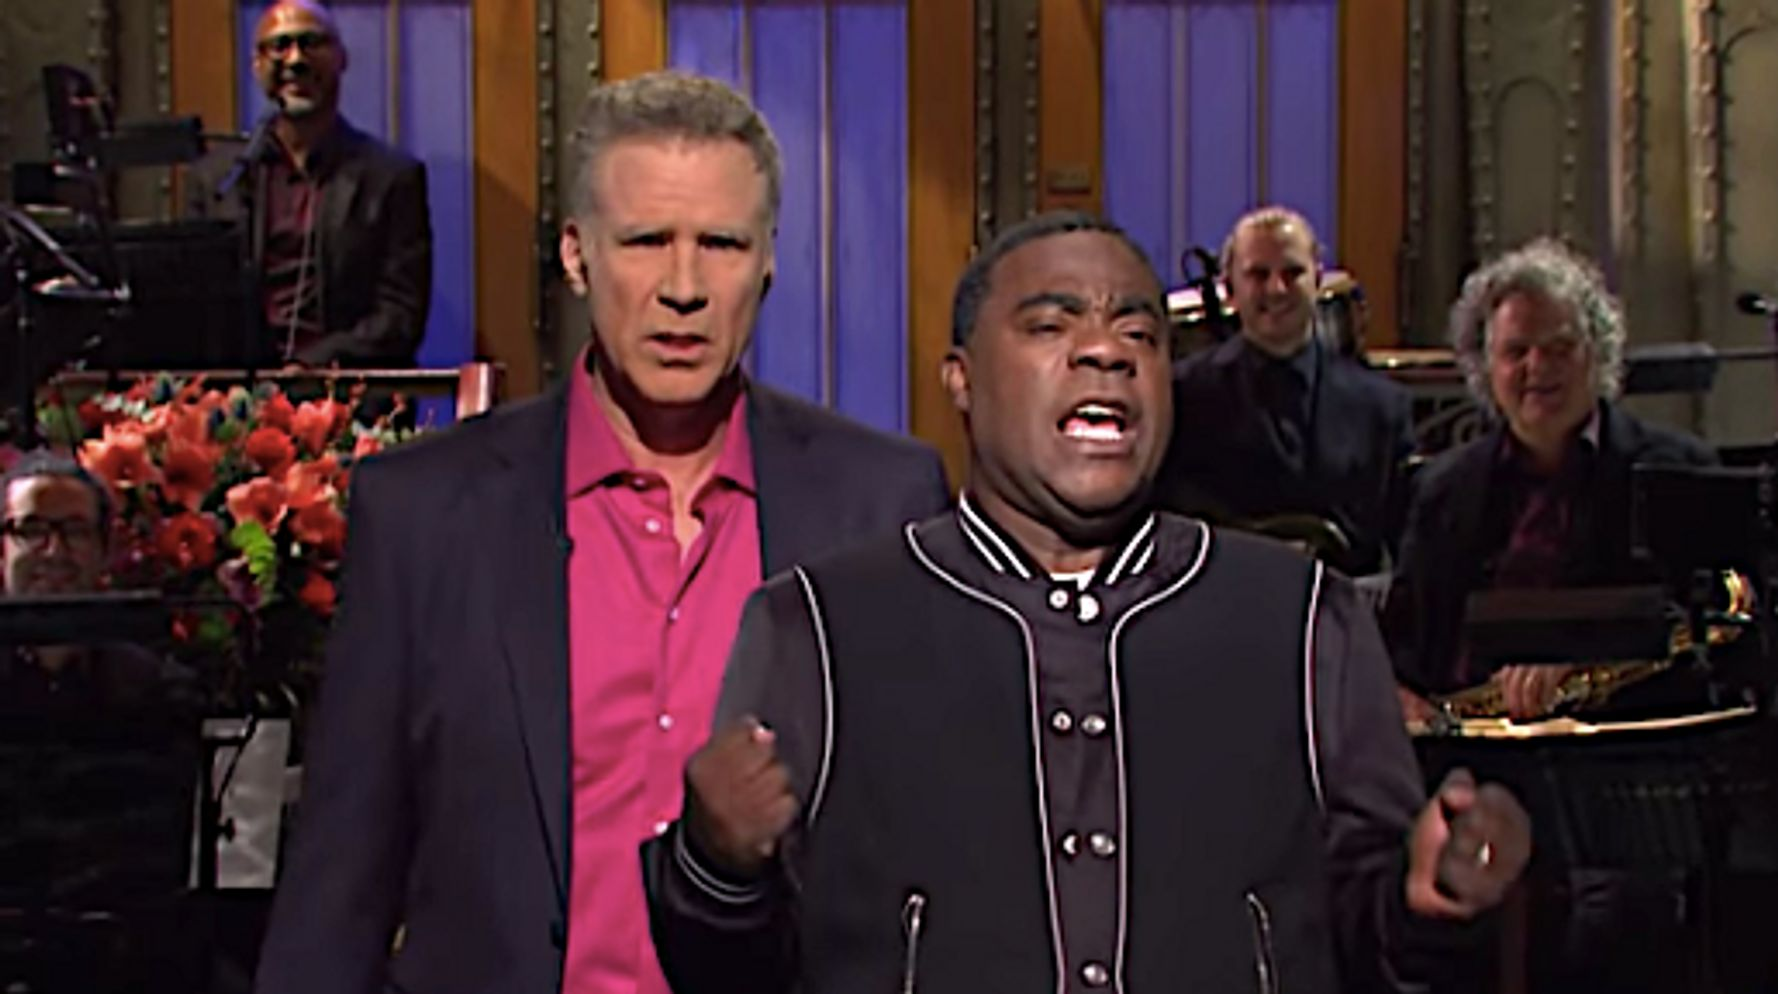 Westlake Legal Group 5dda3c331f00000a14def4b6 Ryan Reynolds In The Audience Rattles Will Ferrell During 'Saturday Night Live' Monologue